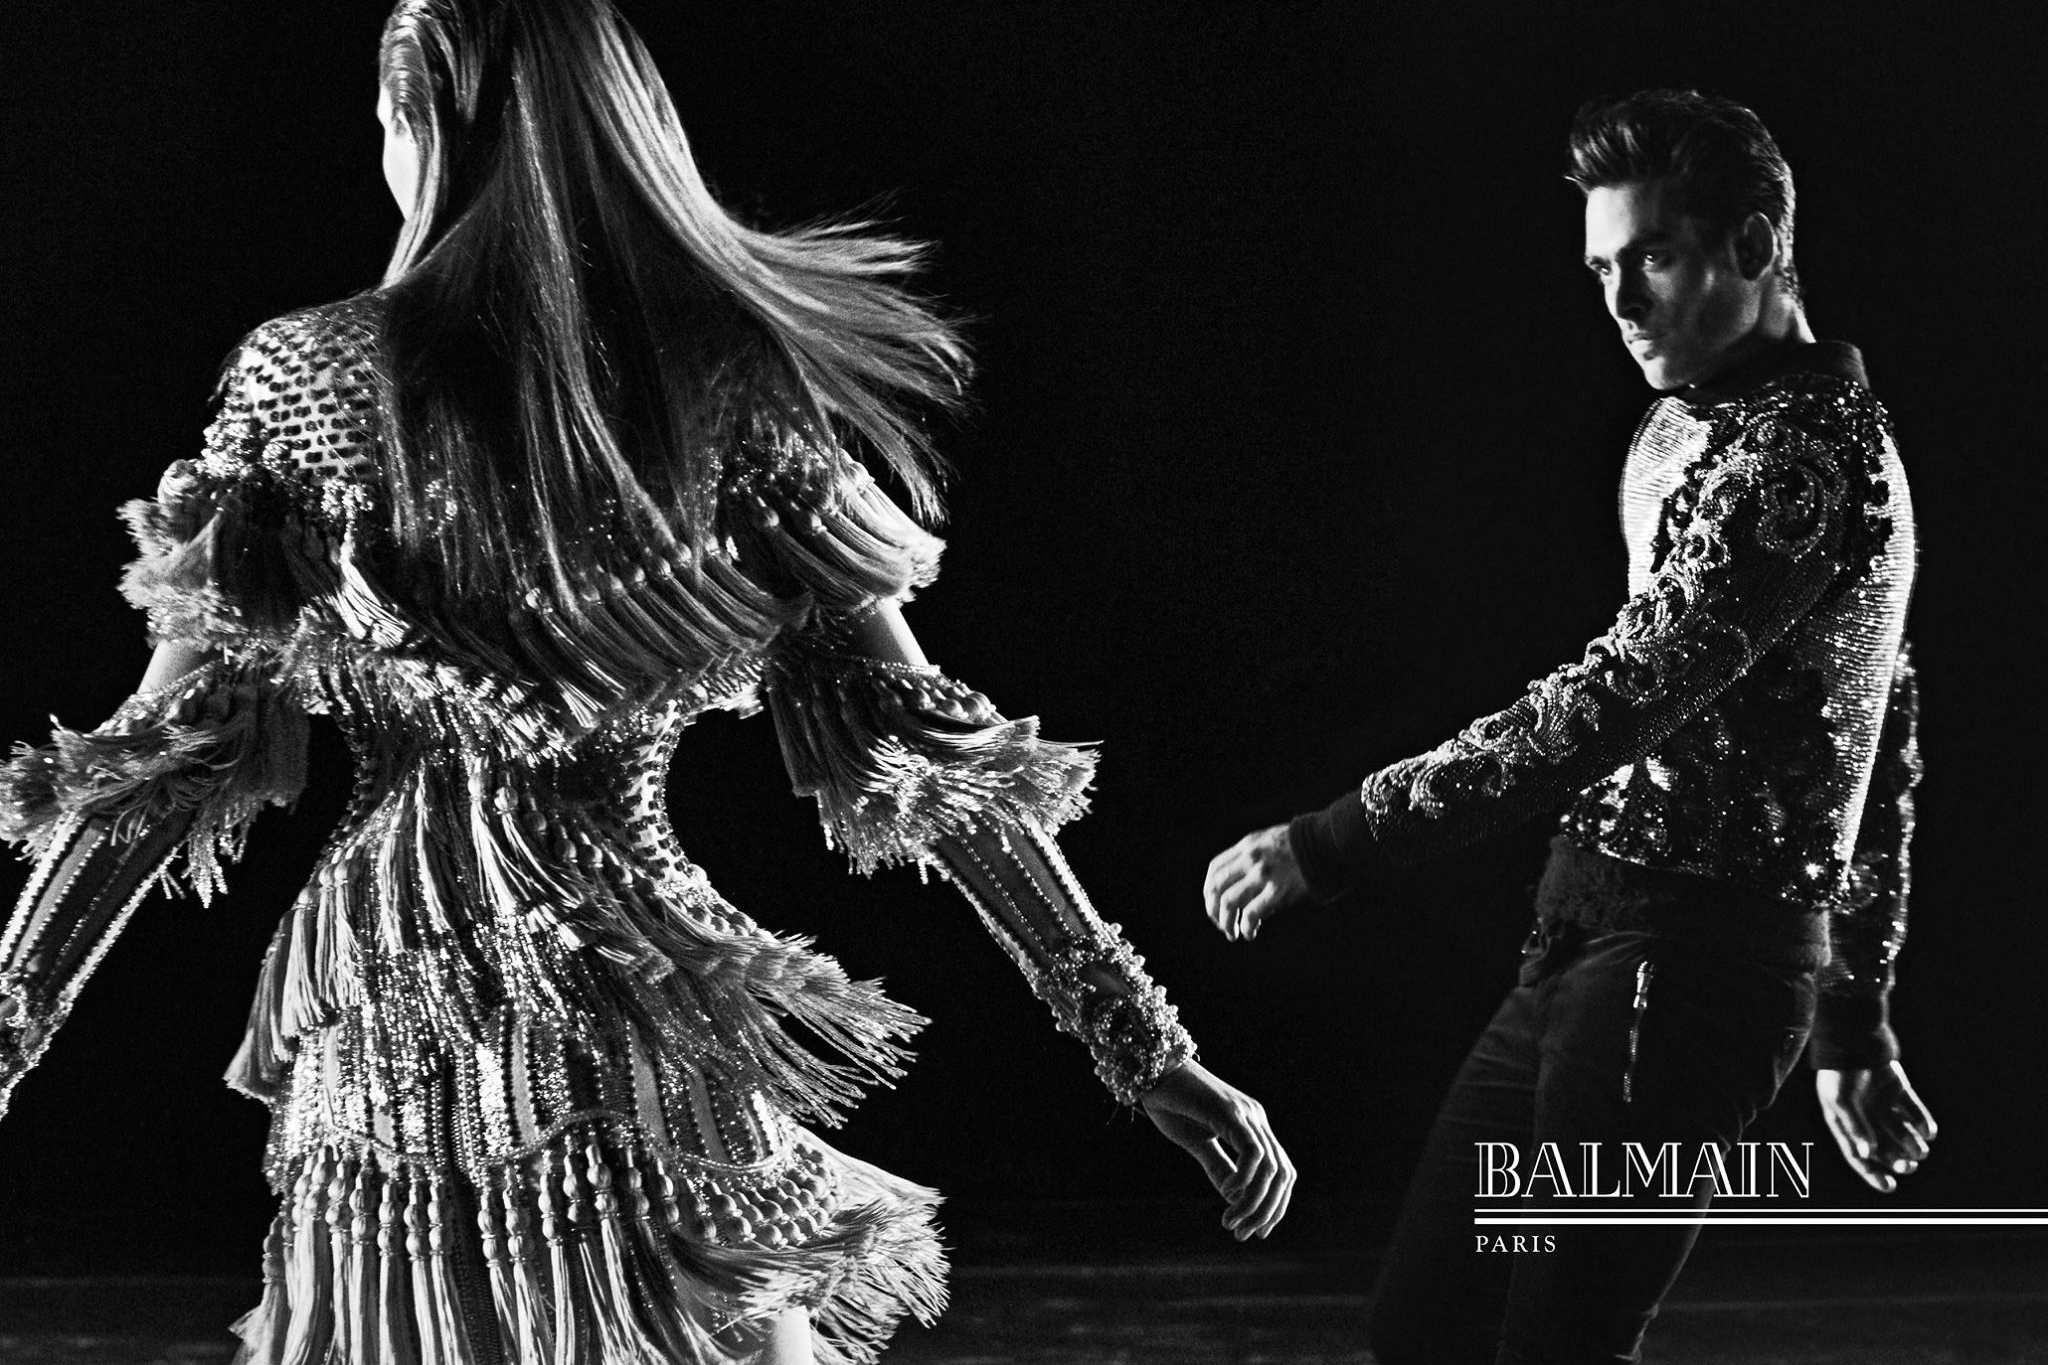 A Crying Kanye West and Kim Kardashian Star in Balmain's 2016 Fall/Winter Campaign